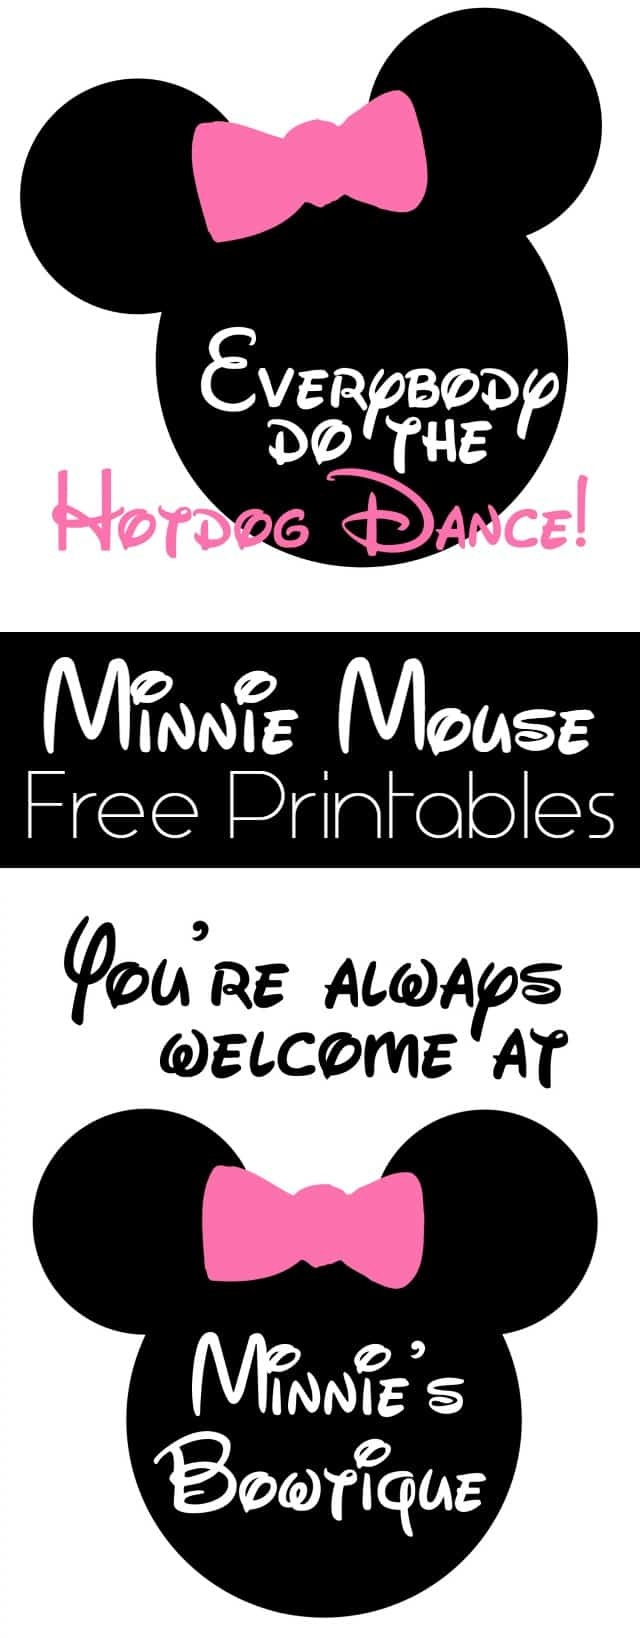 Minnie Mouse Birthday Party Details And Free Printables - Girl Loves - Free Minnie Mouse Printables